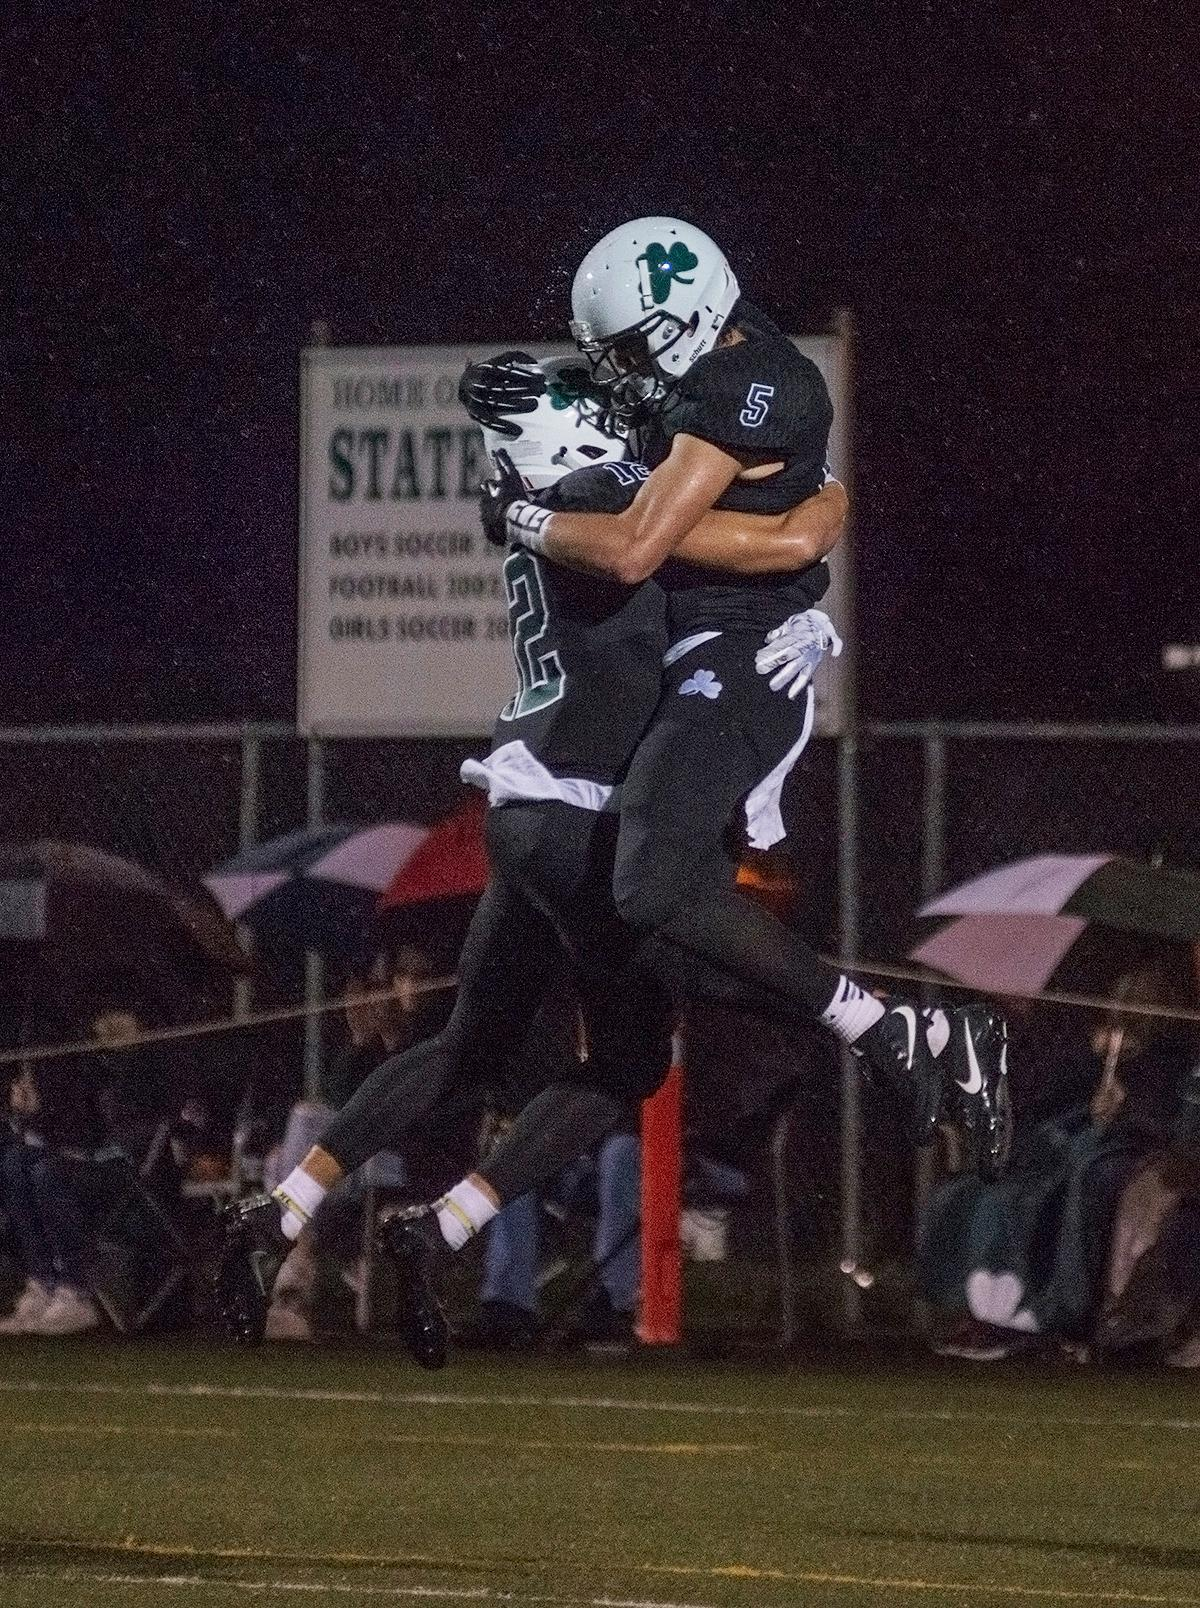 Sheldon Irish wide receivers Patrick Herbert (#5) and Uta Mageo (#12) celebrate a touchdown.  On a rainy Monday evening, Sheldon defeated West Salem 41 to 7 at their home field. The game had been postponed from Friday due to unhealthy levels of smoke in the atmosphere from nearby forest fires. Abigail Winn, Oregon News Lab